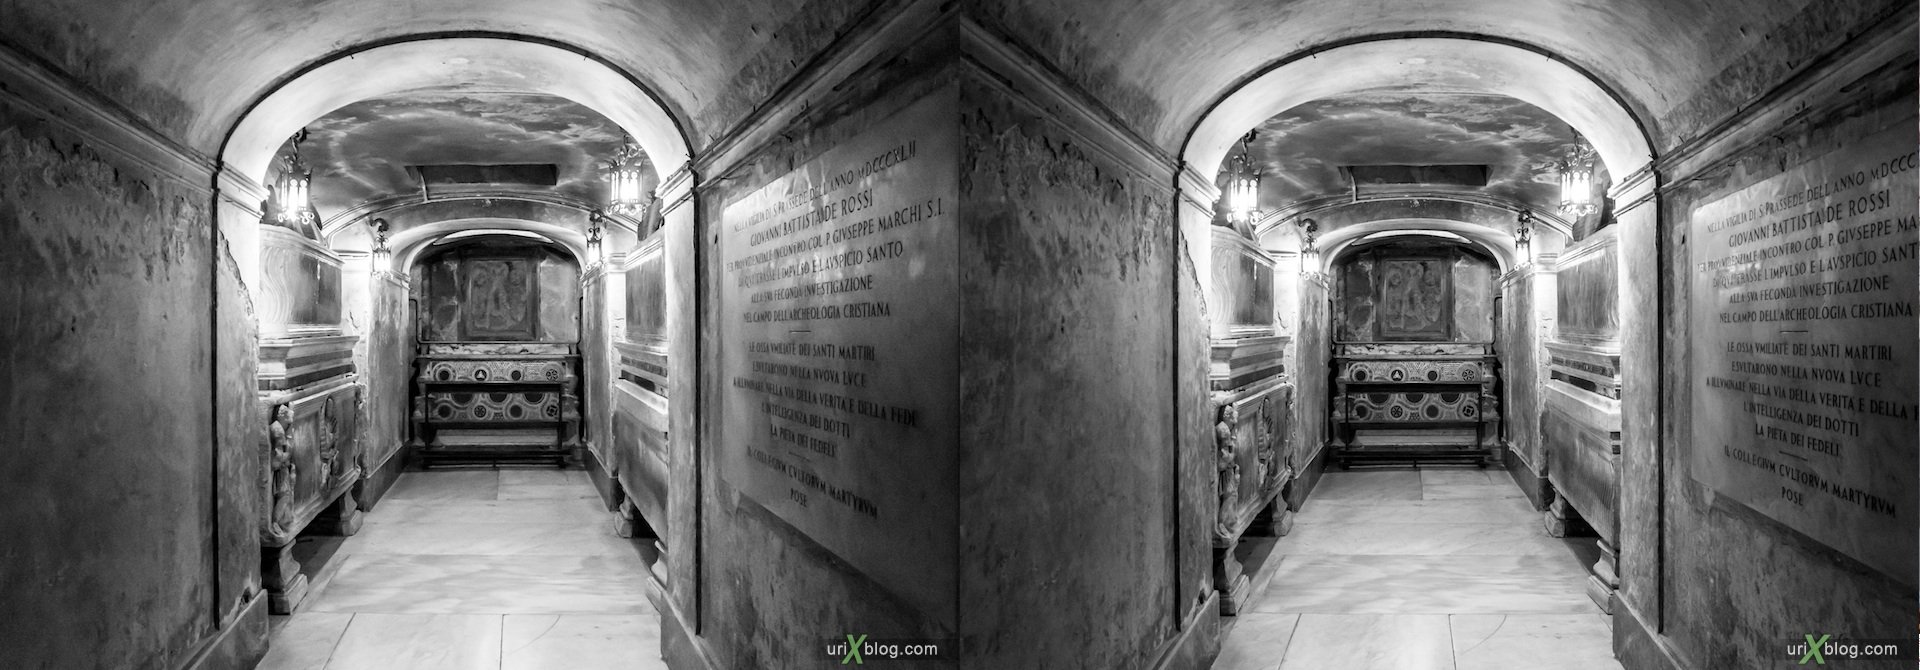 2012, Santa Prassede church, Rome, Italy, cathedral, monastery, Christianity, Catholicism, 3D, stereo pair, cross-eyed, crossview, cross view stereo pair